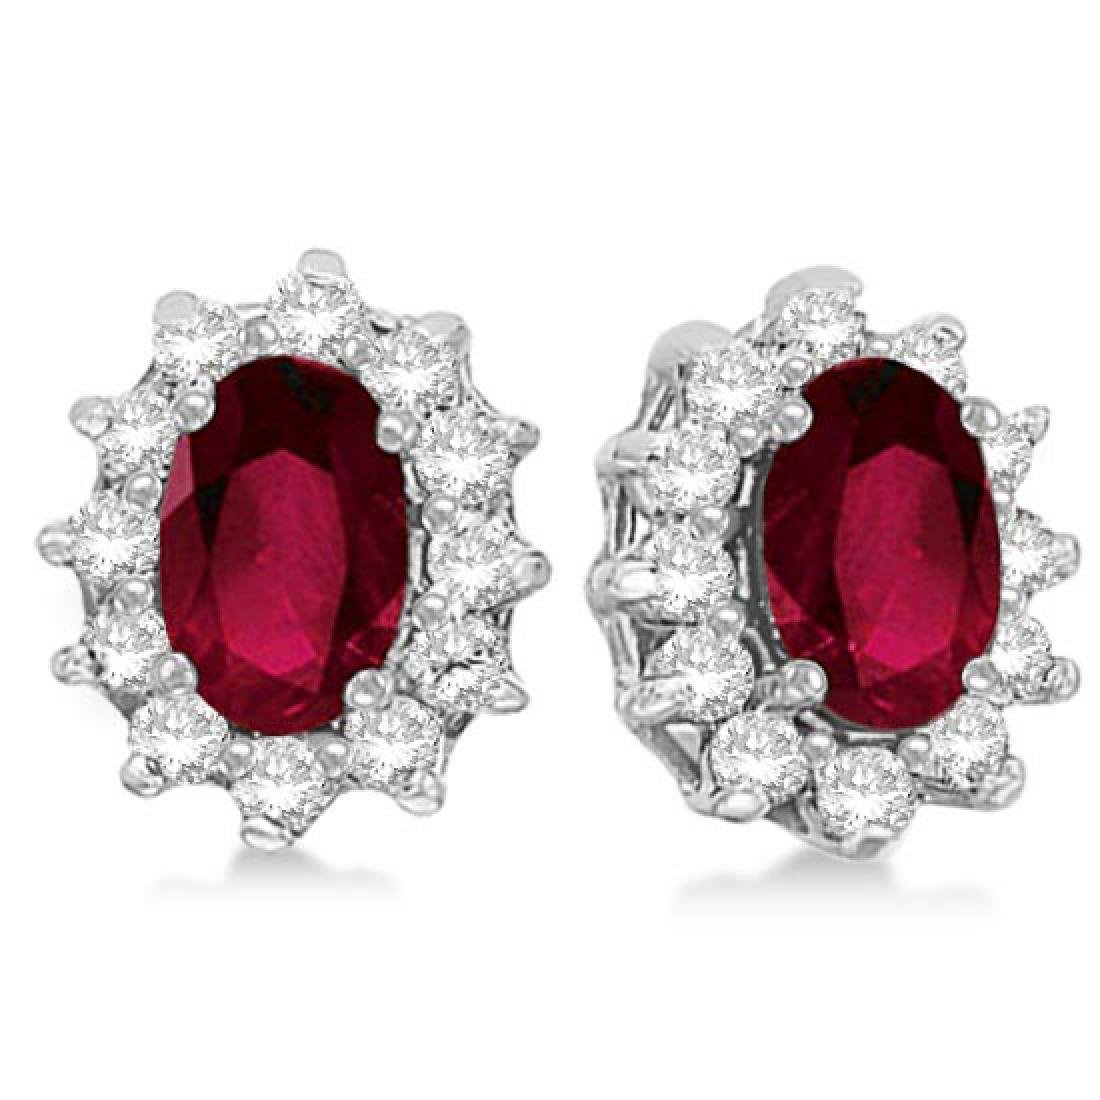 Oval Ruby and Diamond Accented Earrings 14k White Gold